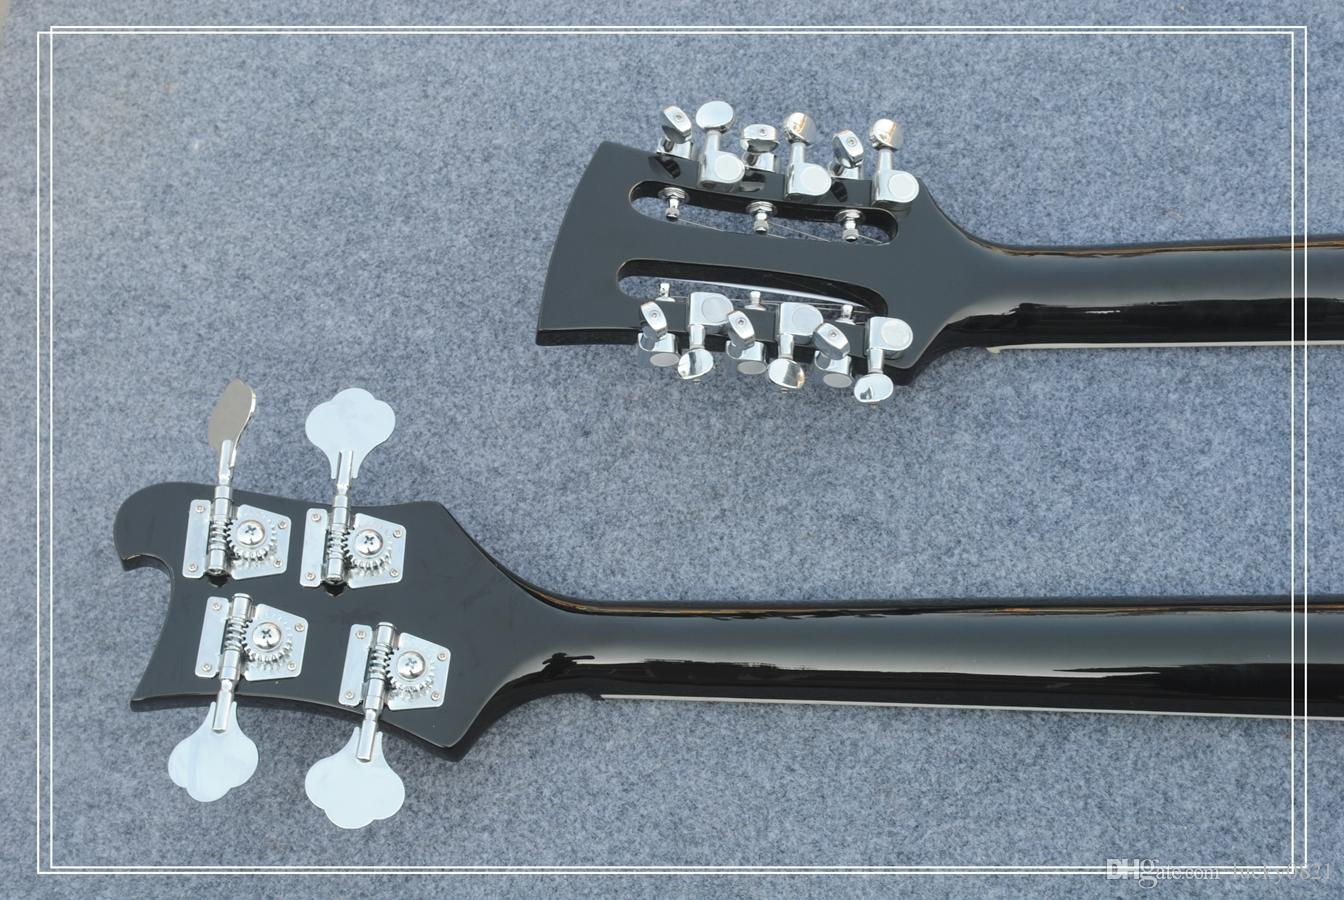 New Double neck bass guitar 4 string bass and 12 string guitar black Electric Guitar OEM Available